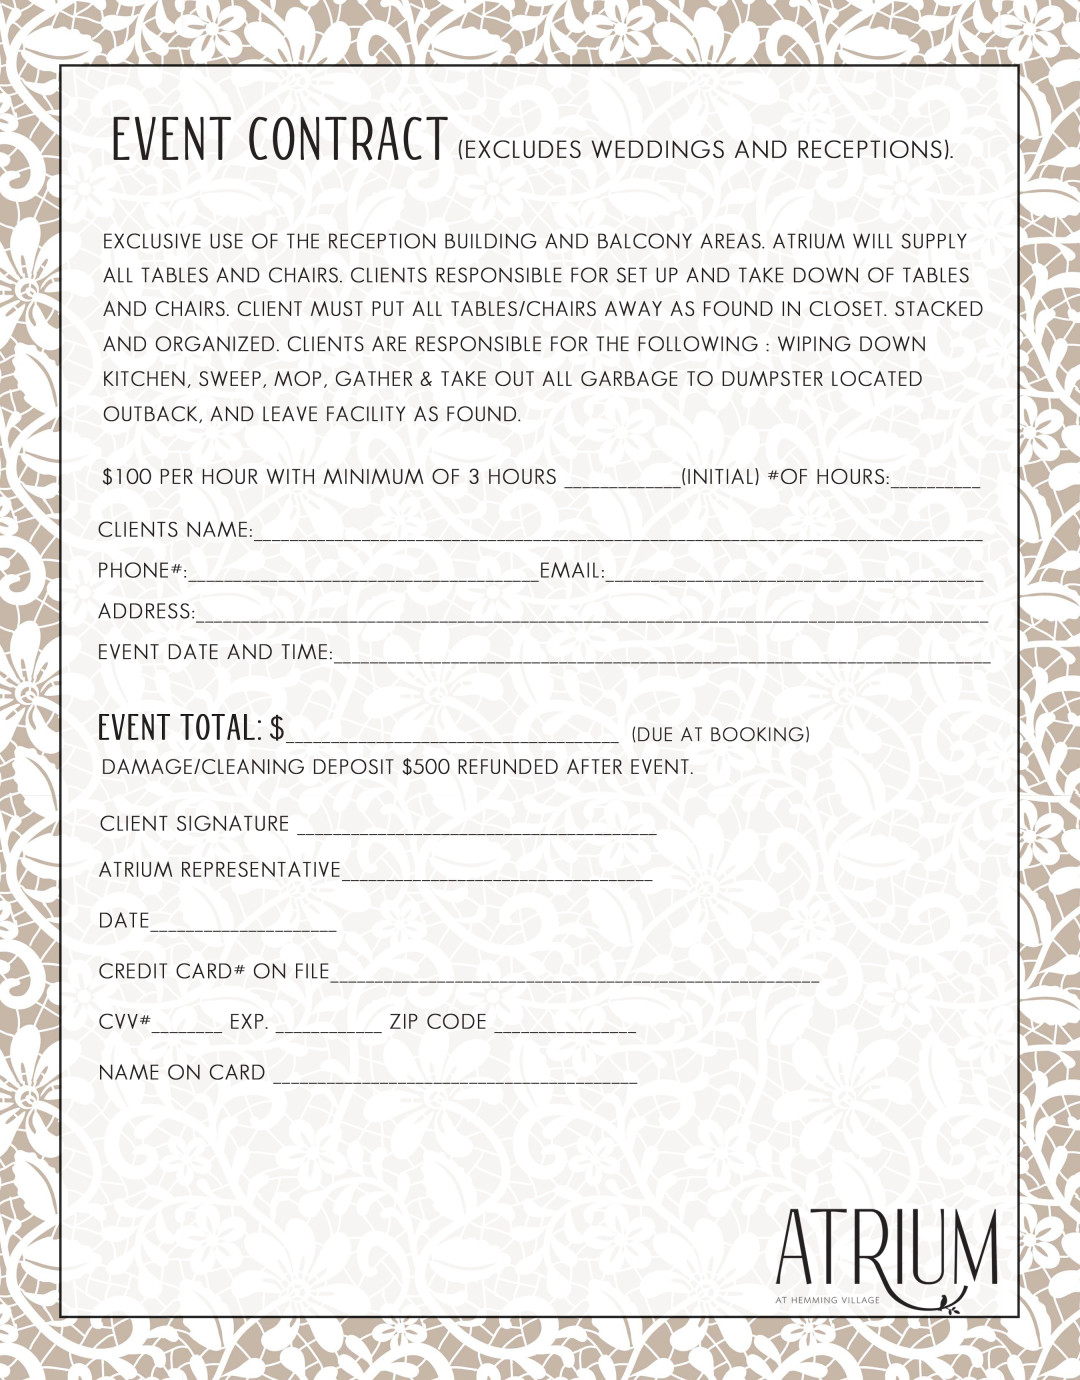 event contract - The Atrium at Hemming Village - Wedding and Event ...